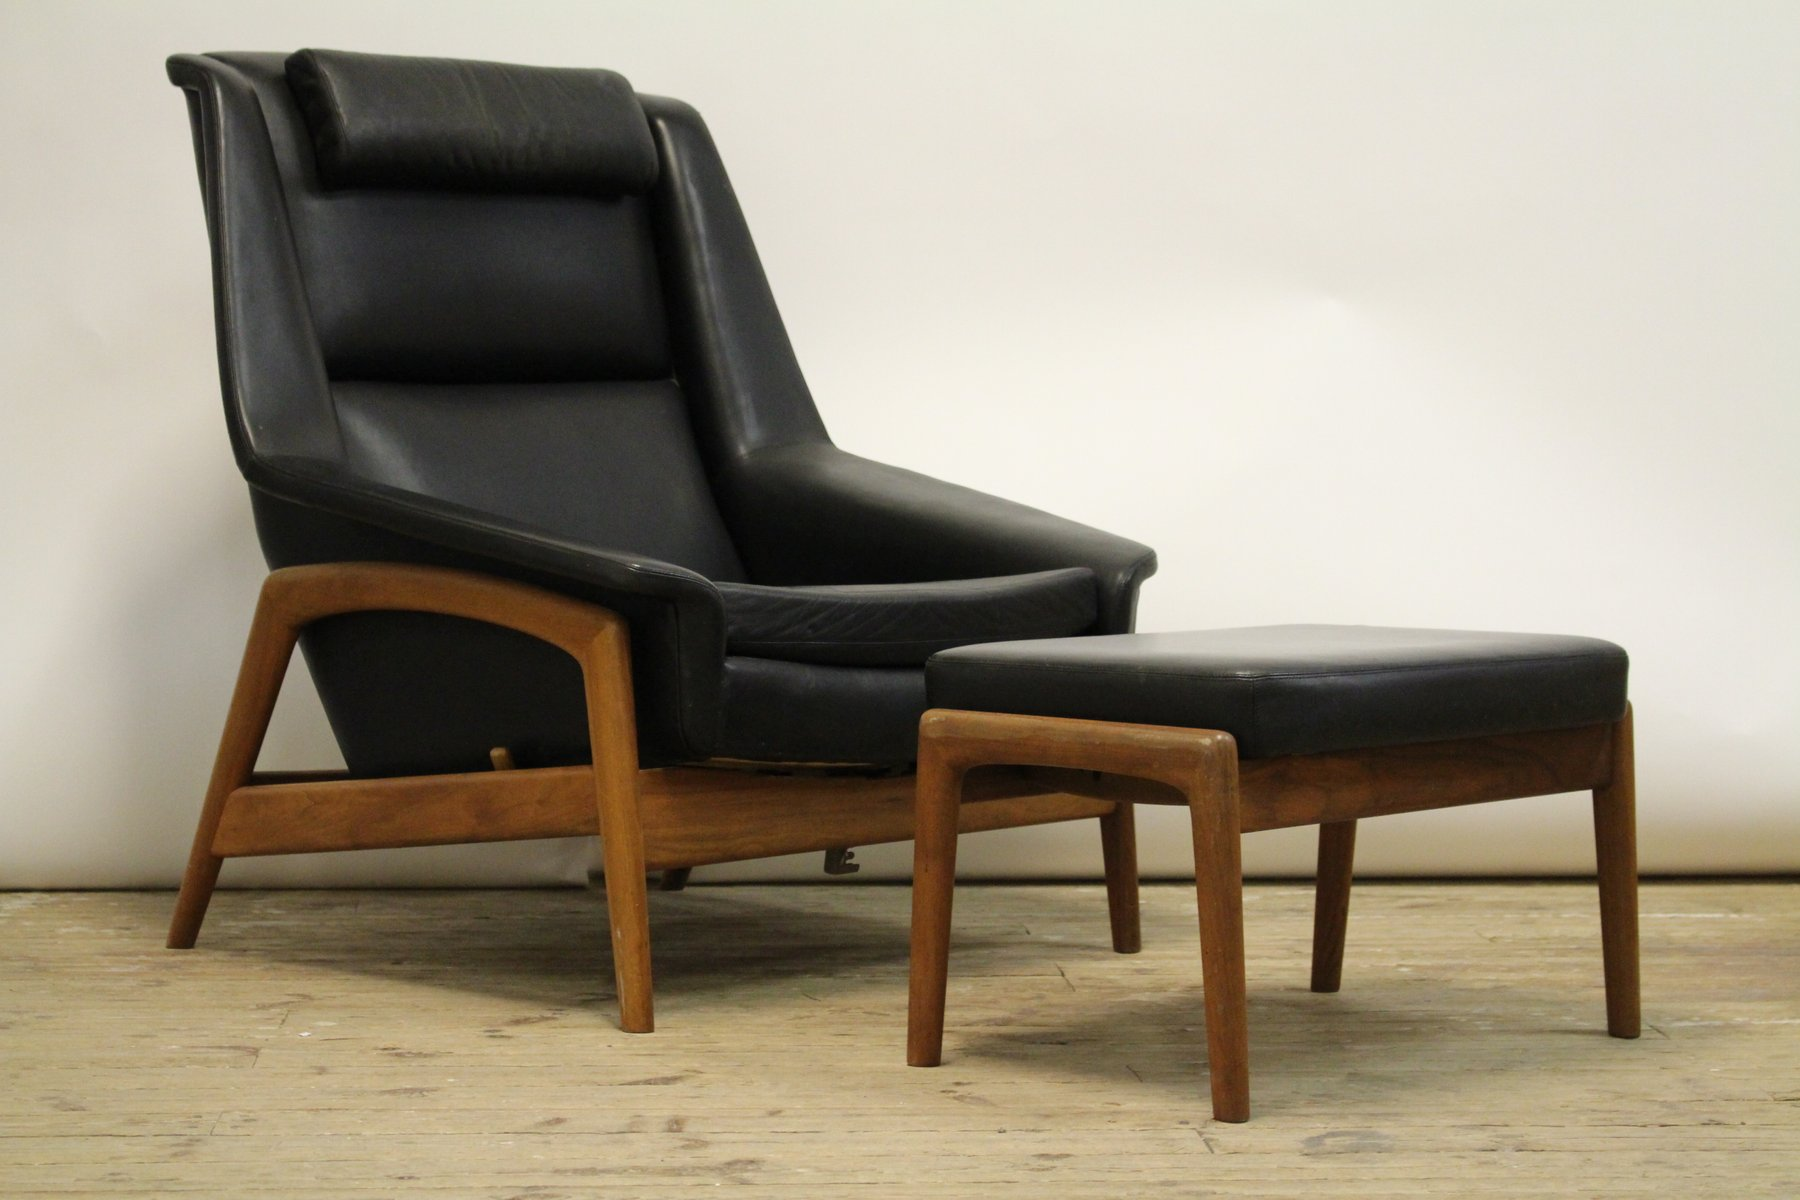 Swedish Profile 4 Armchair With Stool By Folke Ohlsson For Dux, 1960